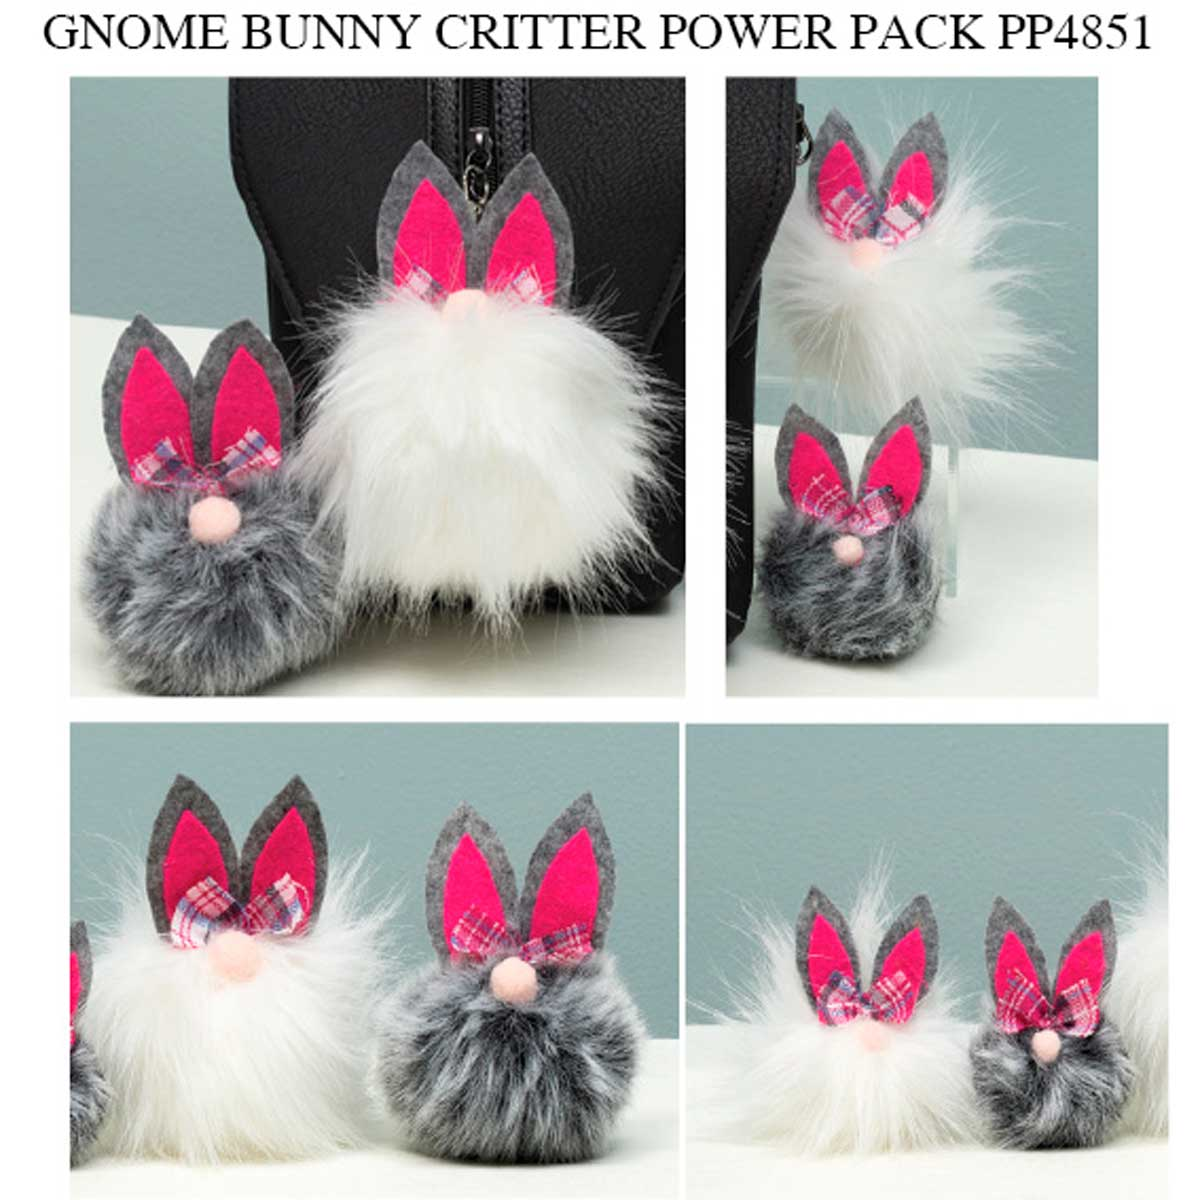 Gnome Bunny Critter Power Pack 48 Units PP4851